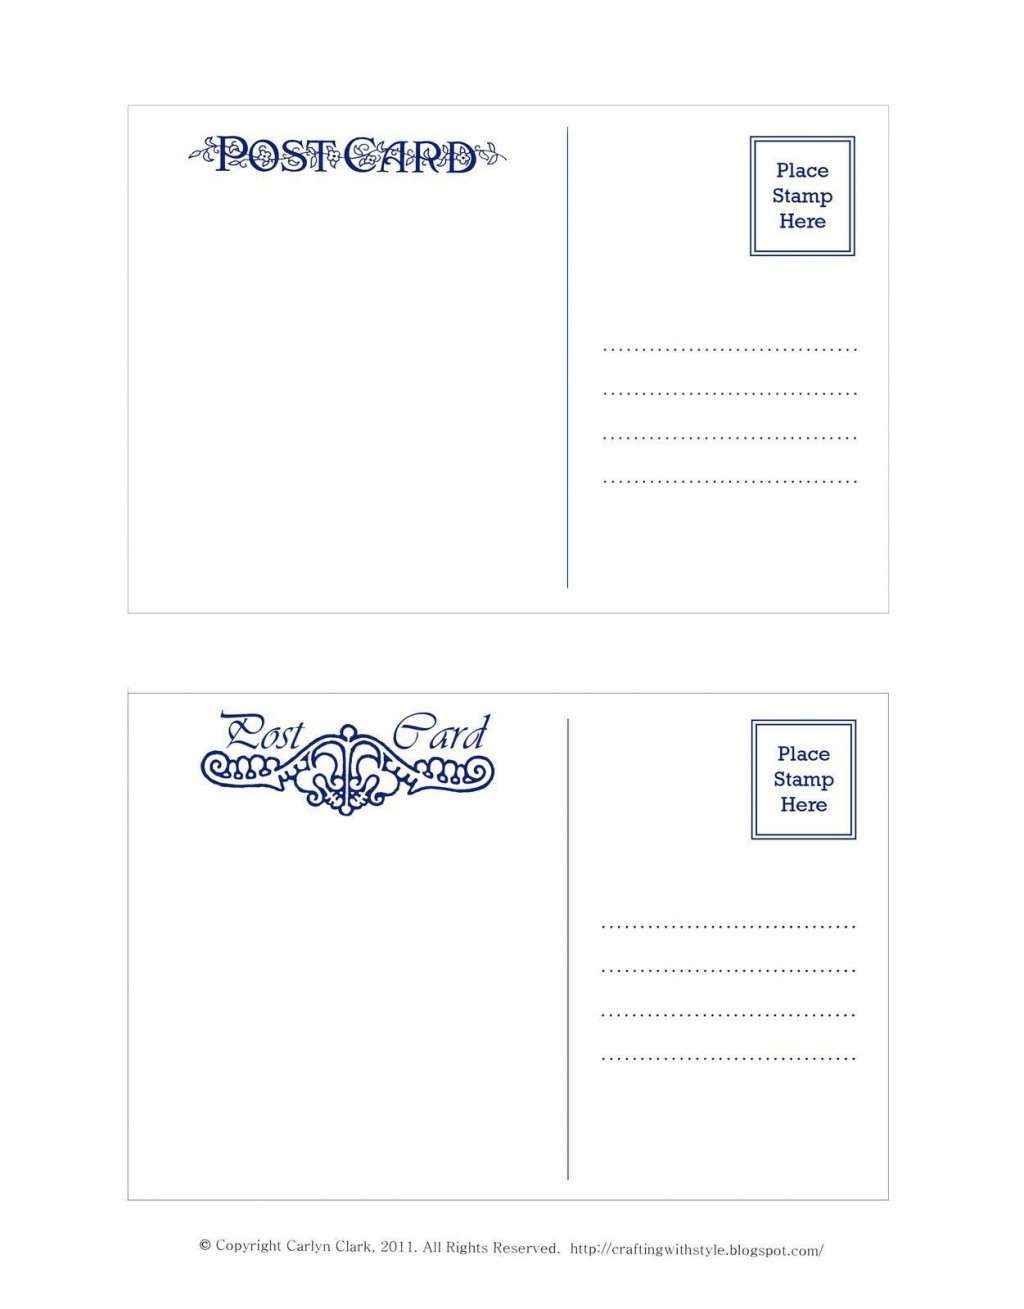 002 Fearsome Postcard Front And Back Template Free Picture  To SchoolLarge